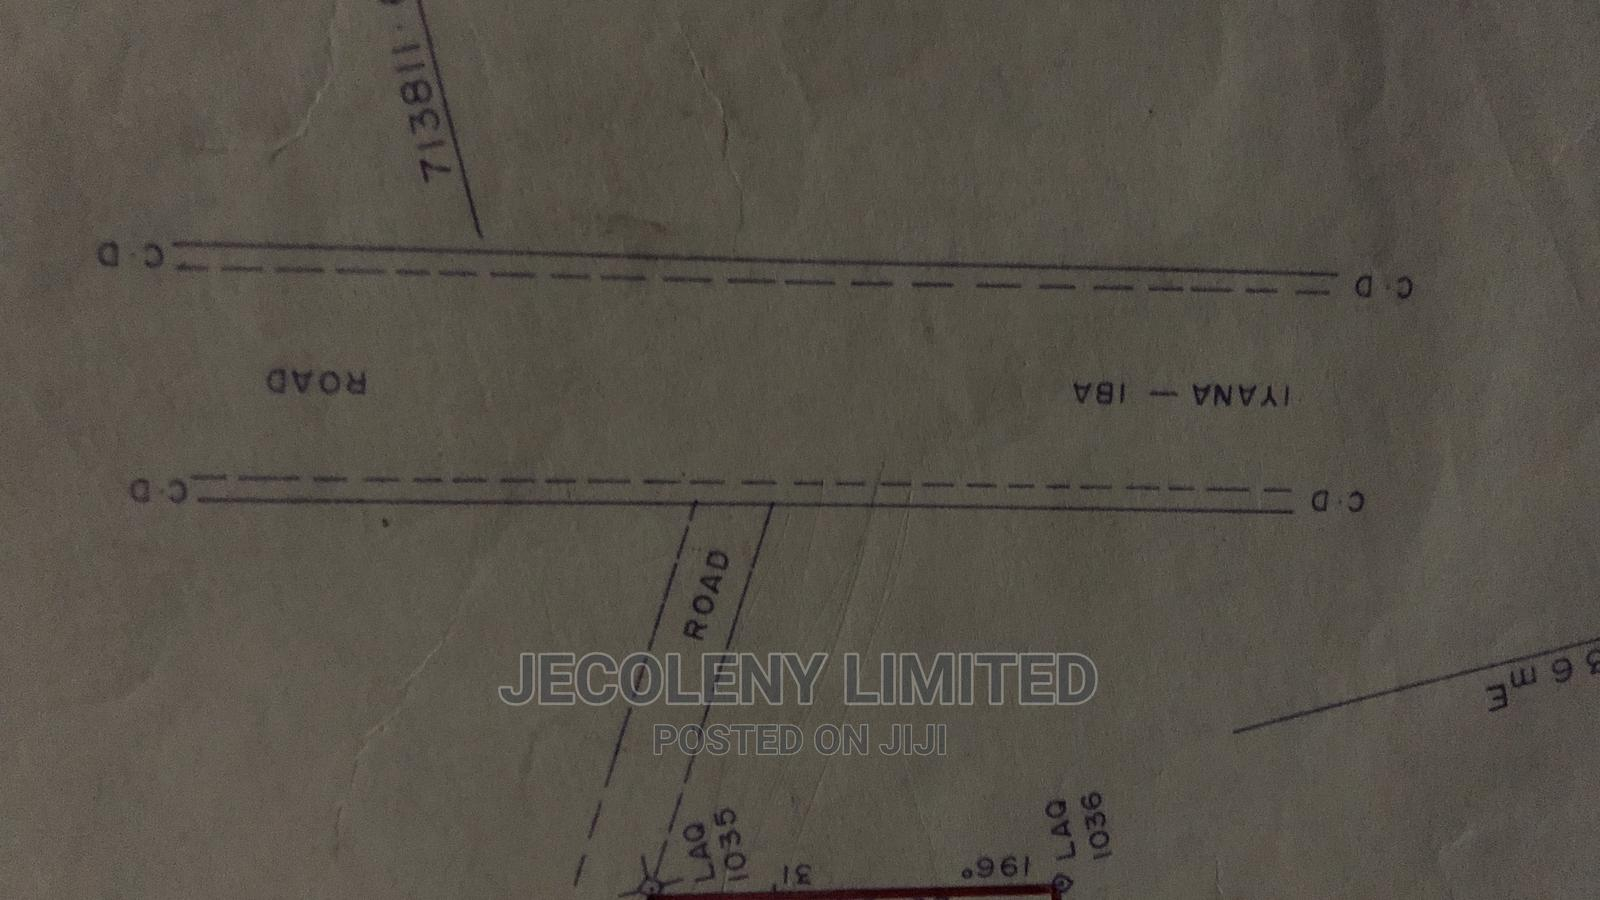 Archive: Bungalow House for Sale or Lease